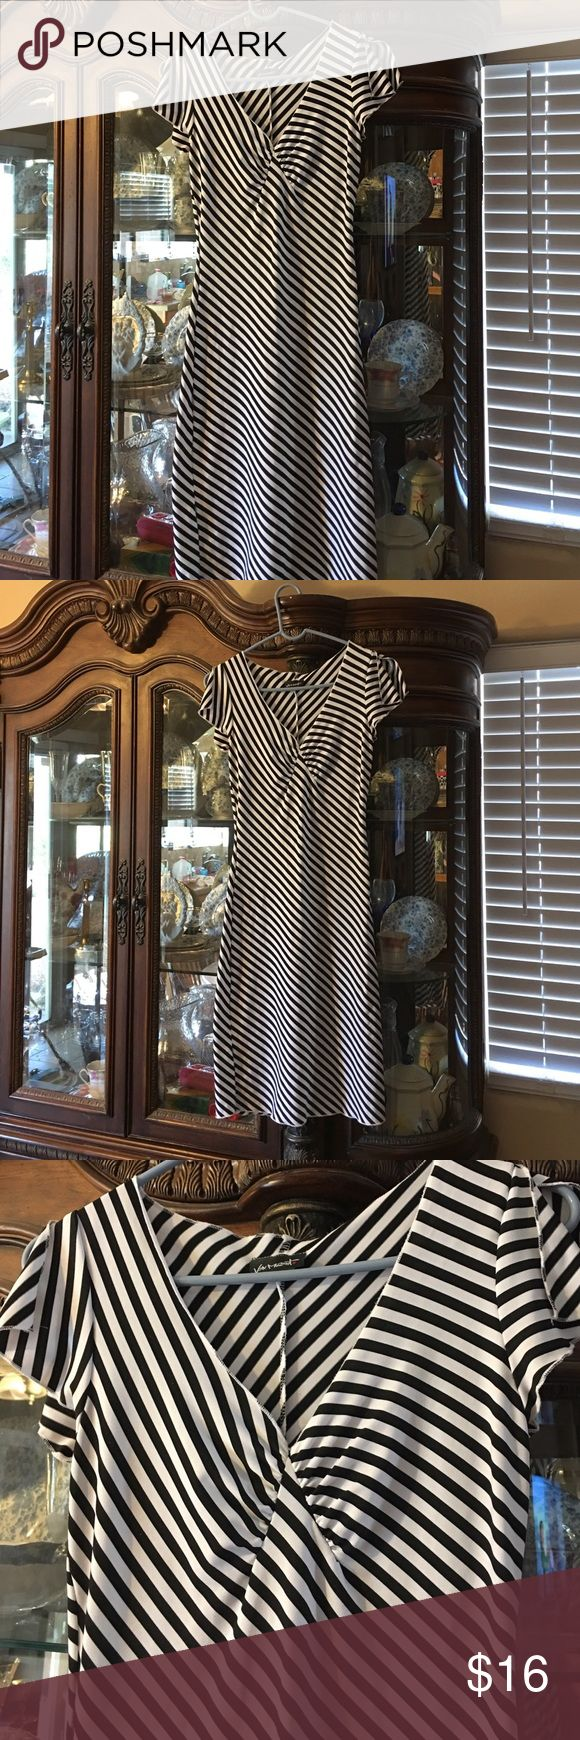 Retro Black & White Striped Dress, Sz Medium Retro Black & White Striped Dress, Size Medium. Like new, never worn. Von Mozart Dresses Midi